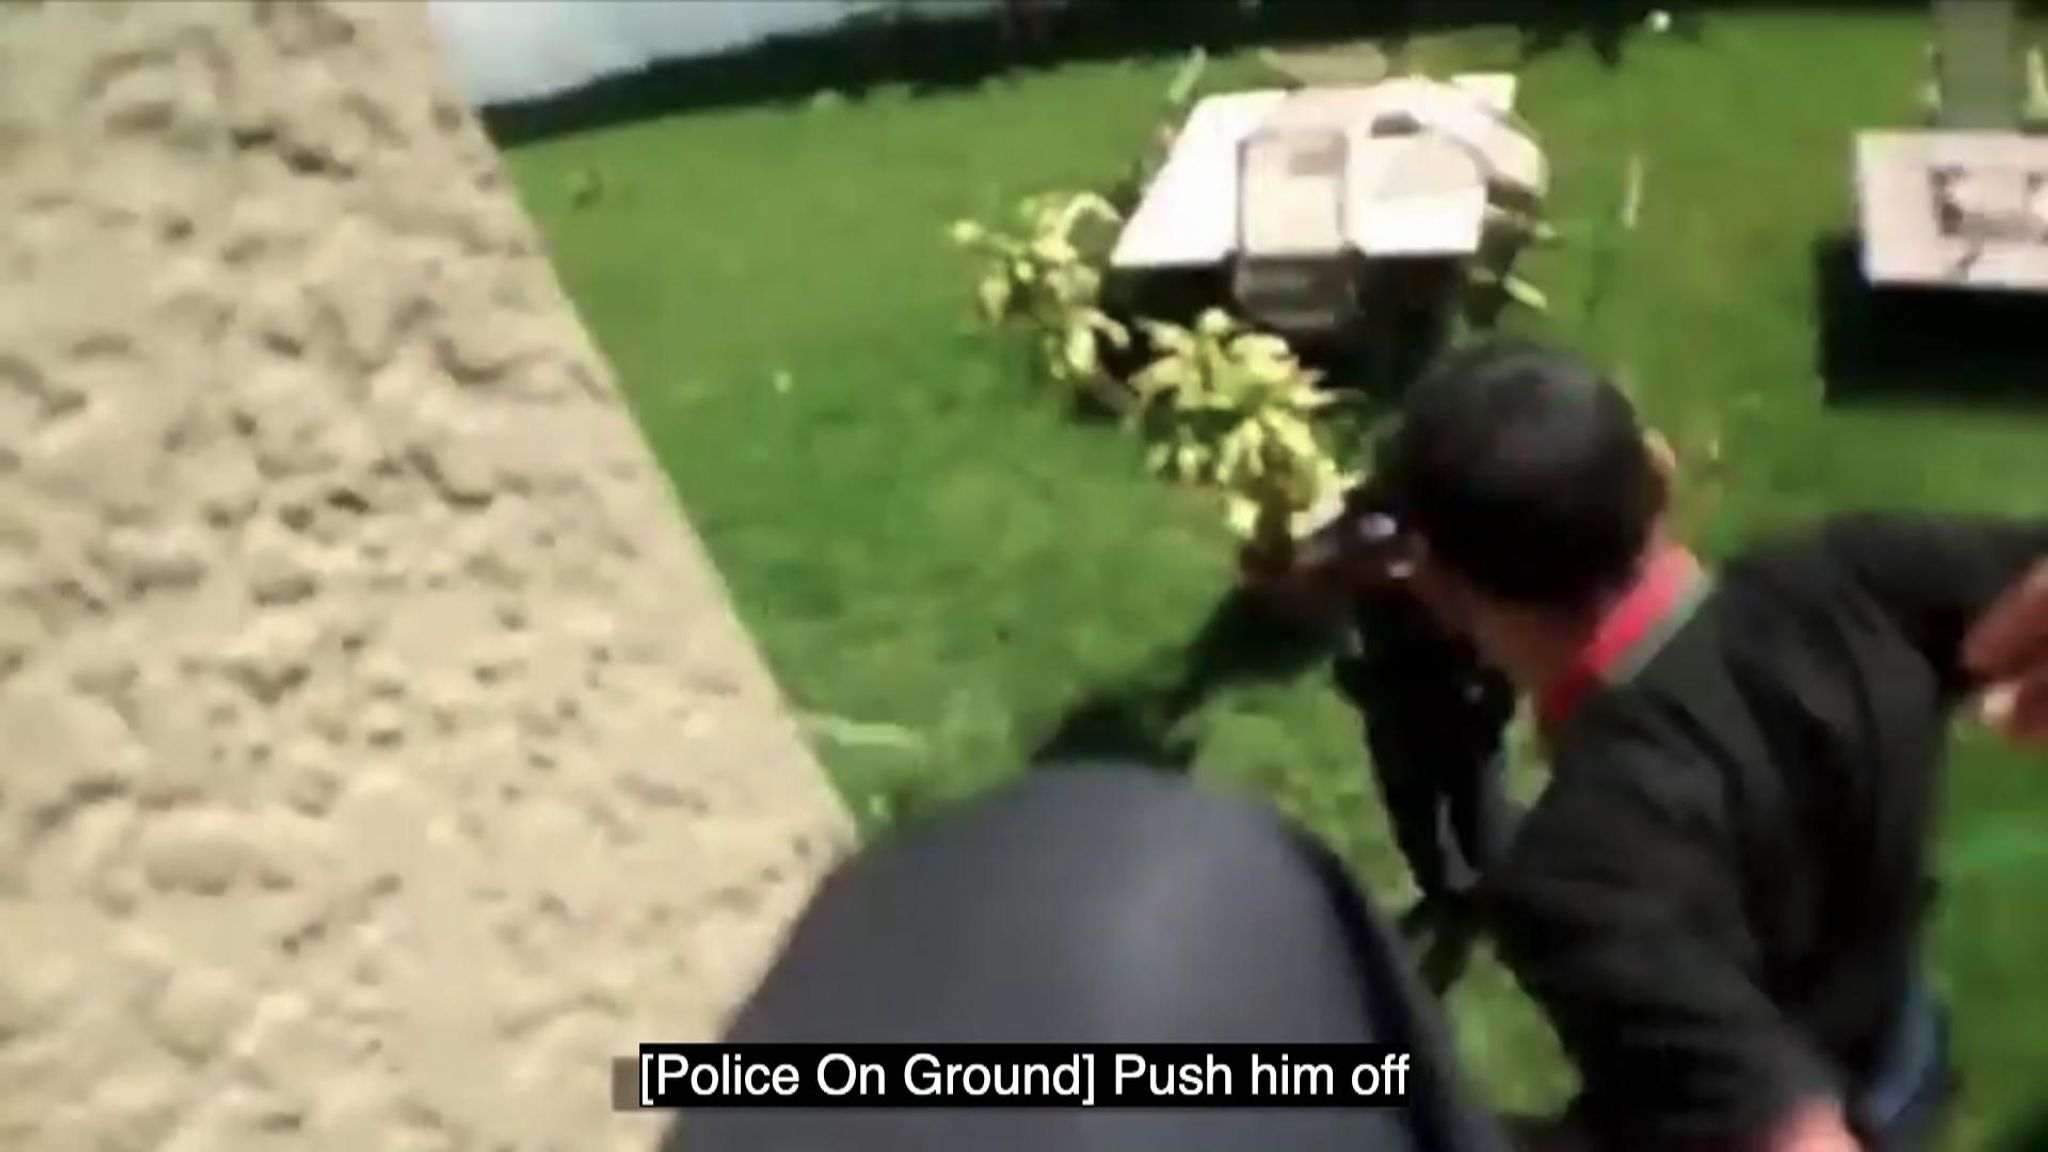 Video shows Florida police officer shove teenager off roof after order by sergeant